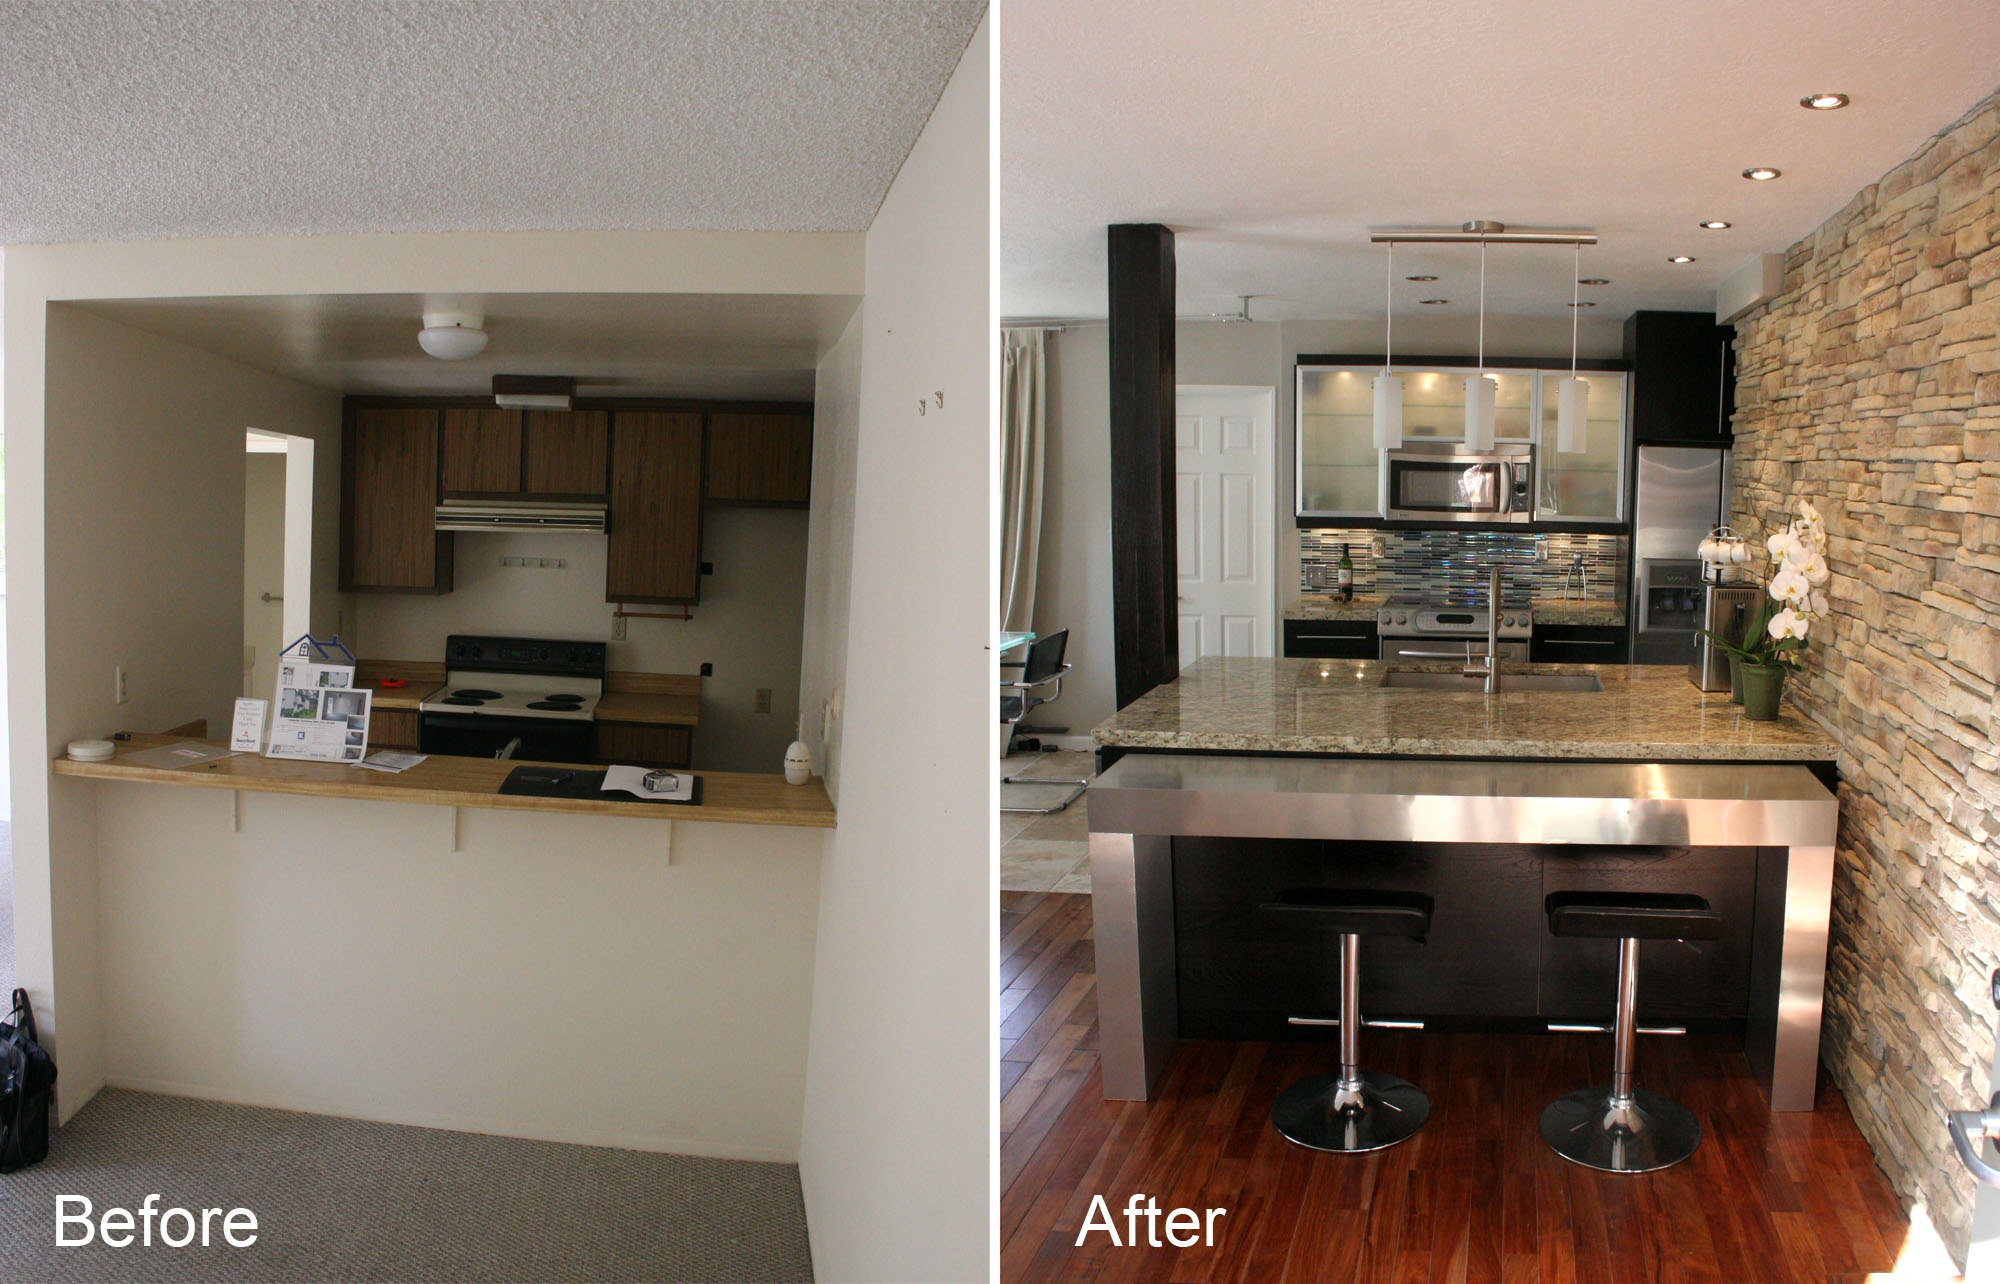 Renovation Ideas Before And After Amazing Before And After Kitchen Remodel  Home Design Inspiration